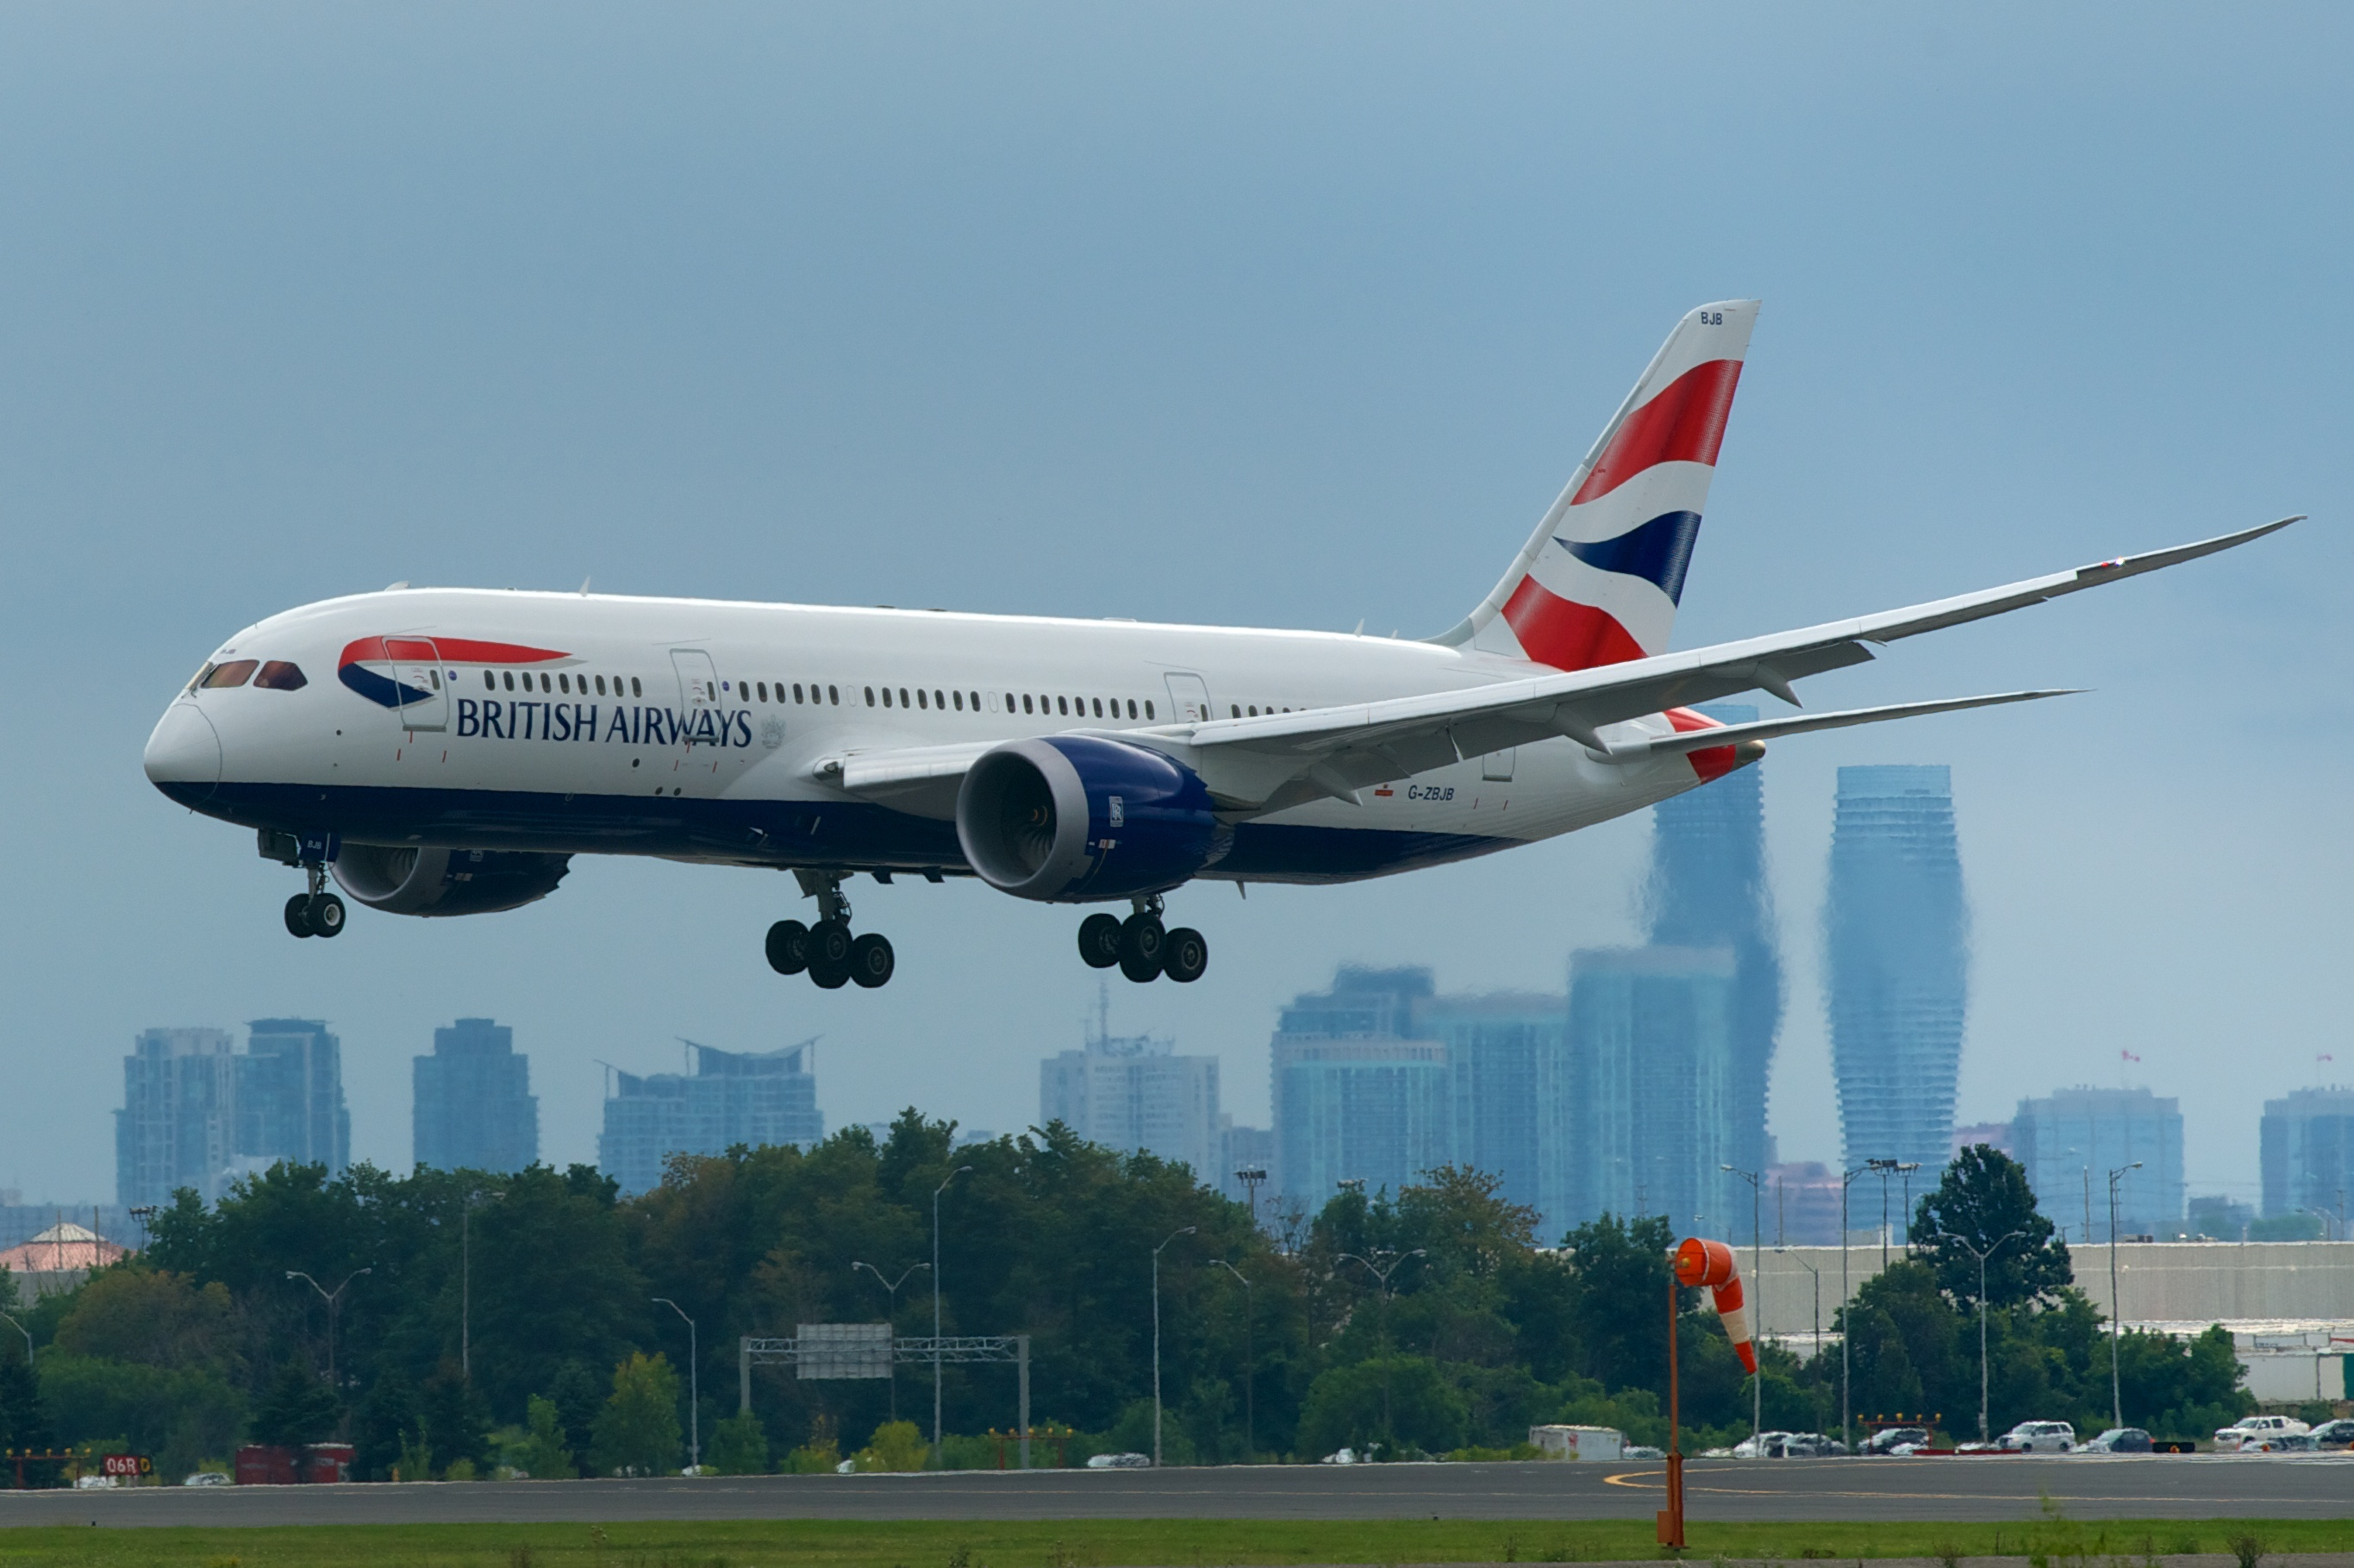 https://upload.wikimedia.org/wikipedia/commons/2/2b/British_Airways_Boeing_787-8_G-ZBJB.jpg